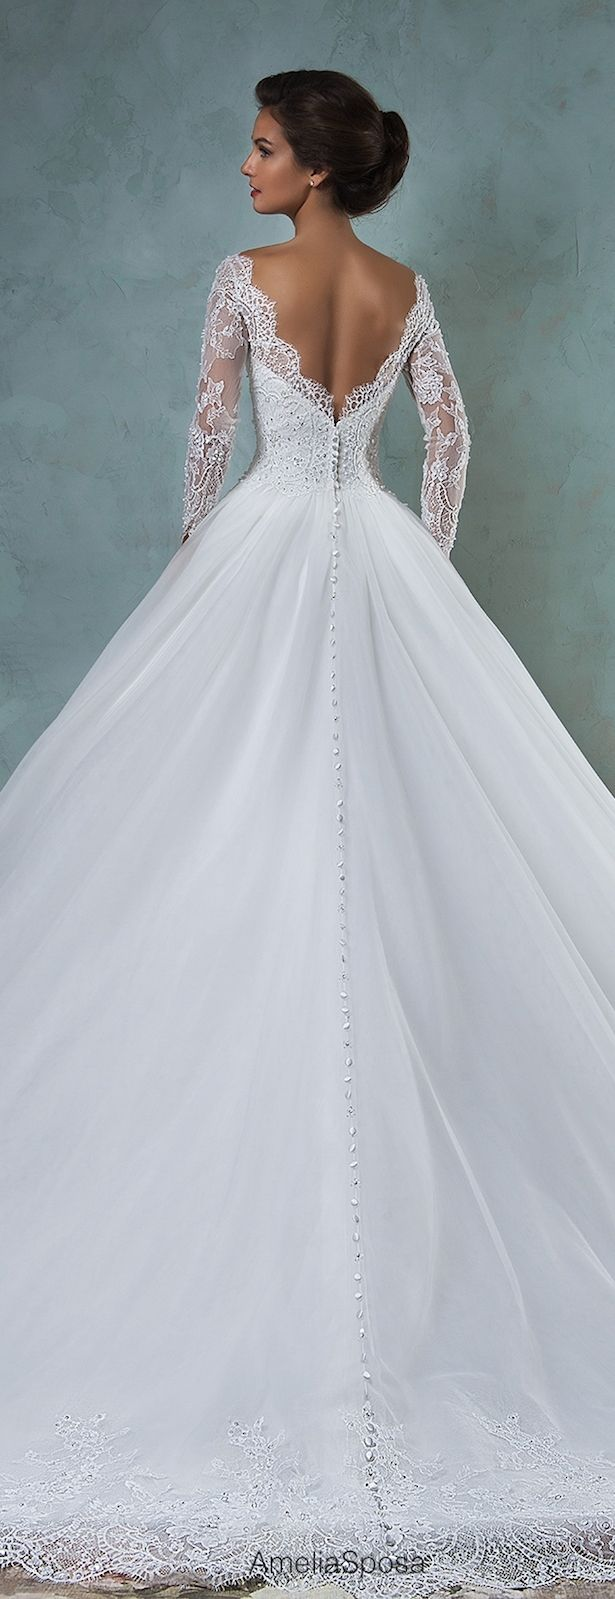 http://rubies.work/0495-sapphire-ring/ Amelia Sposa 2016 Wedding Dress | Belle The Magazine